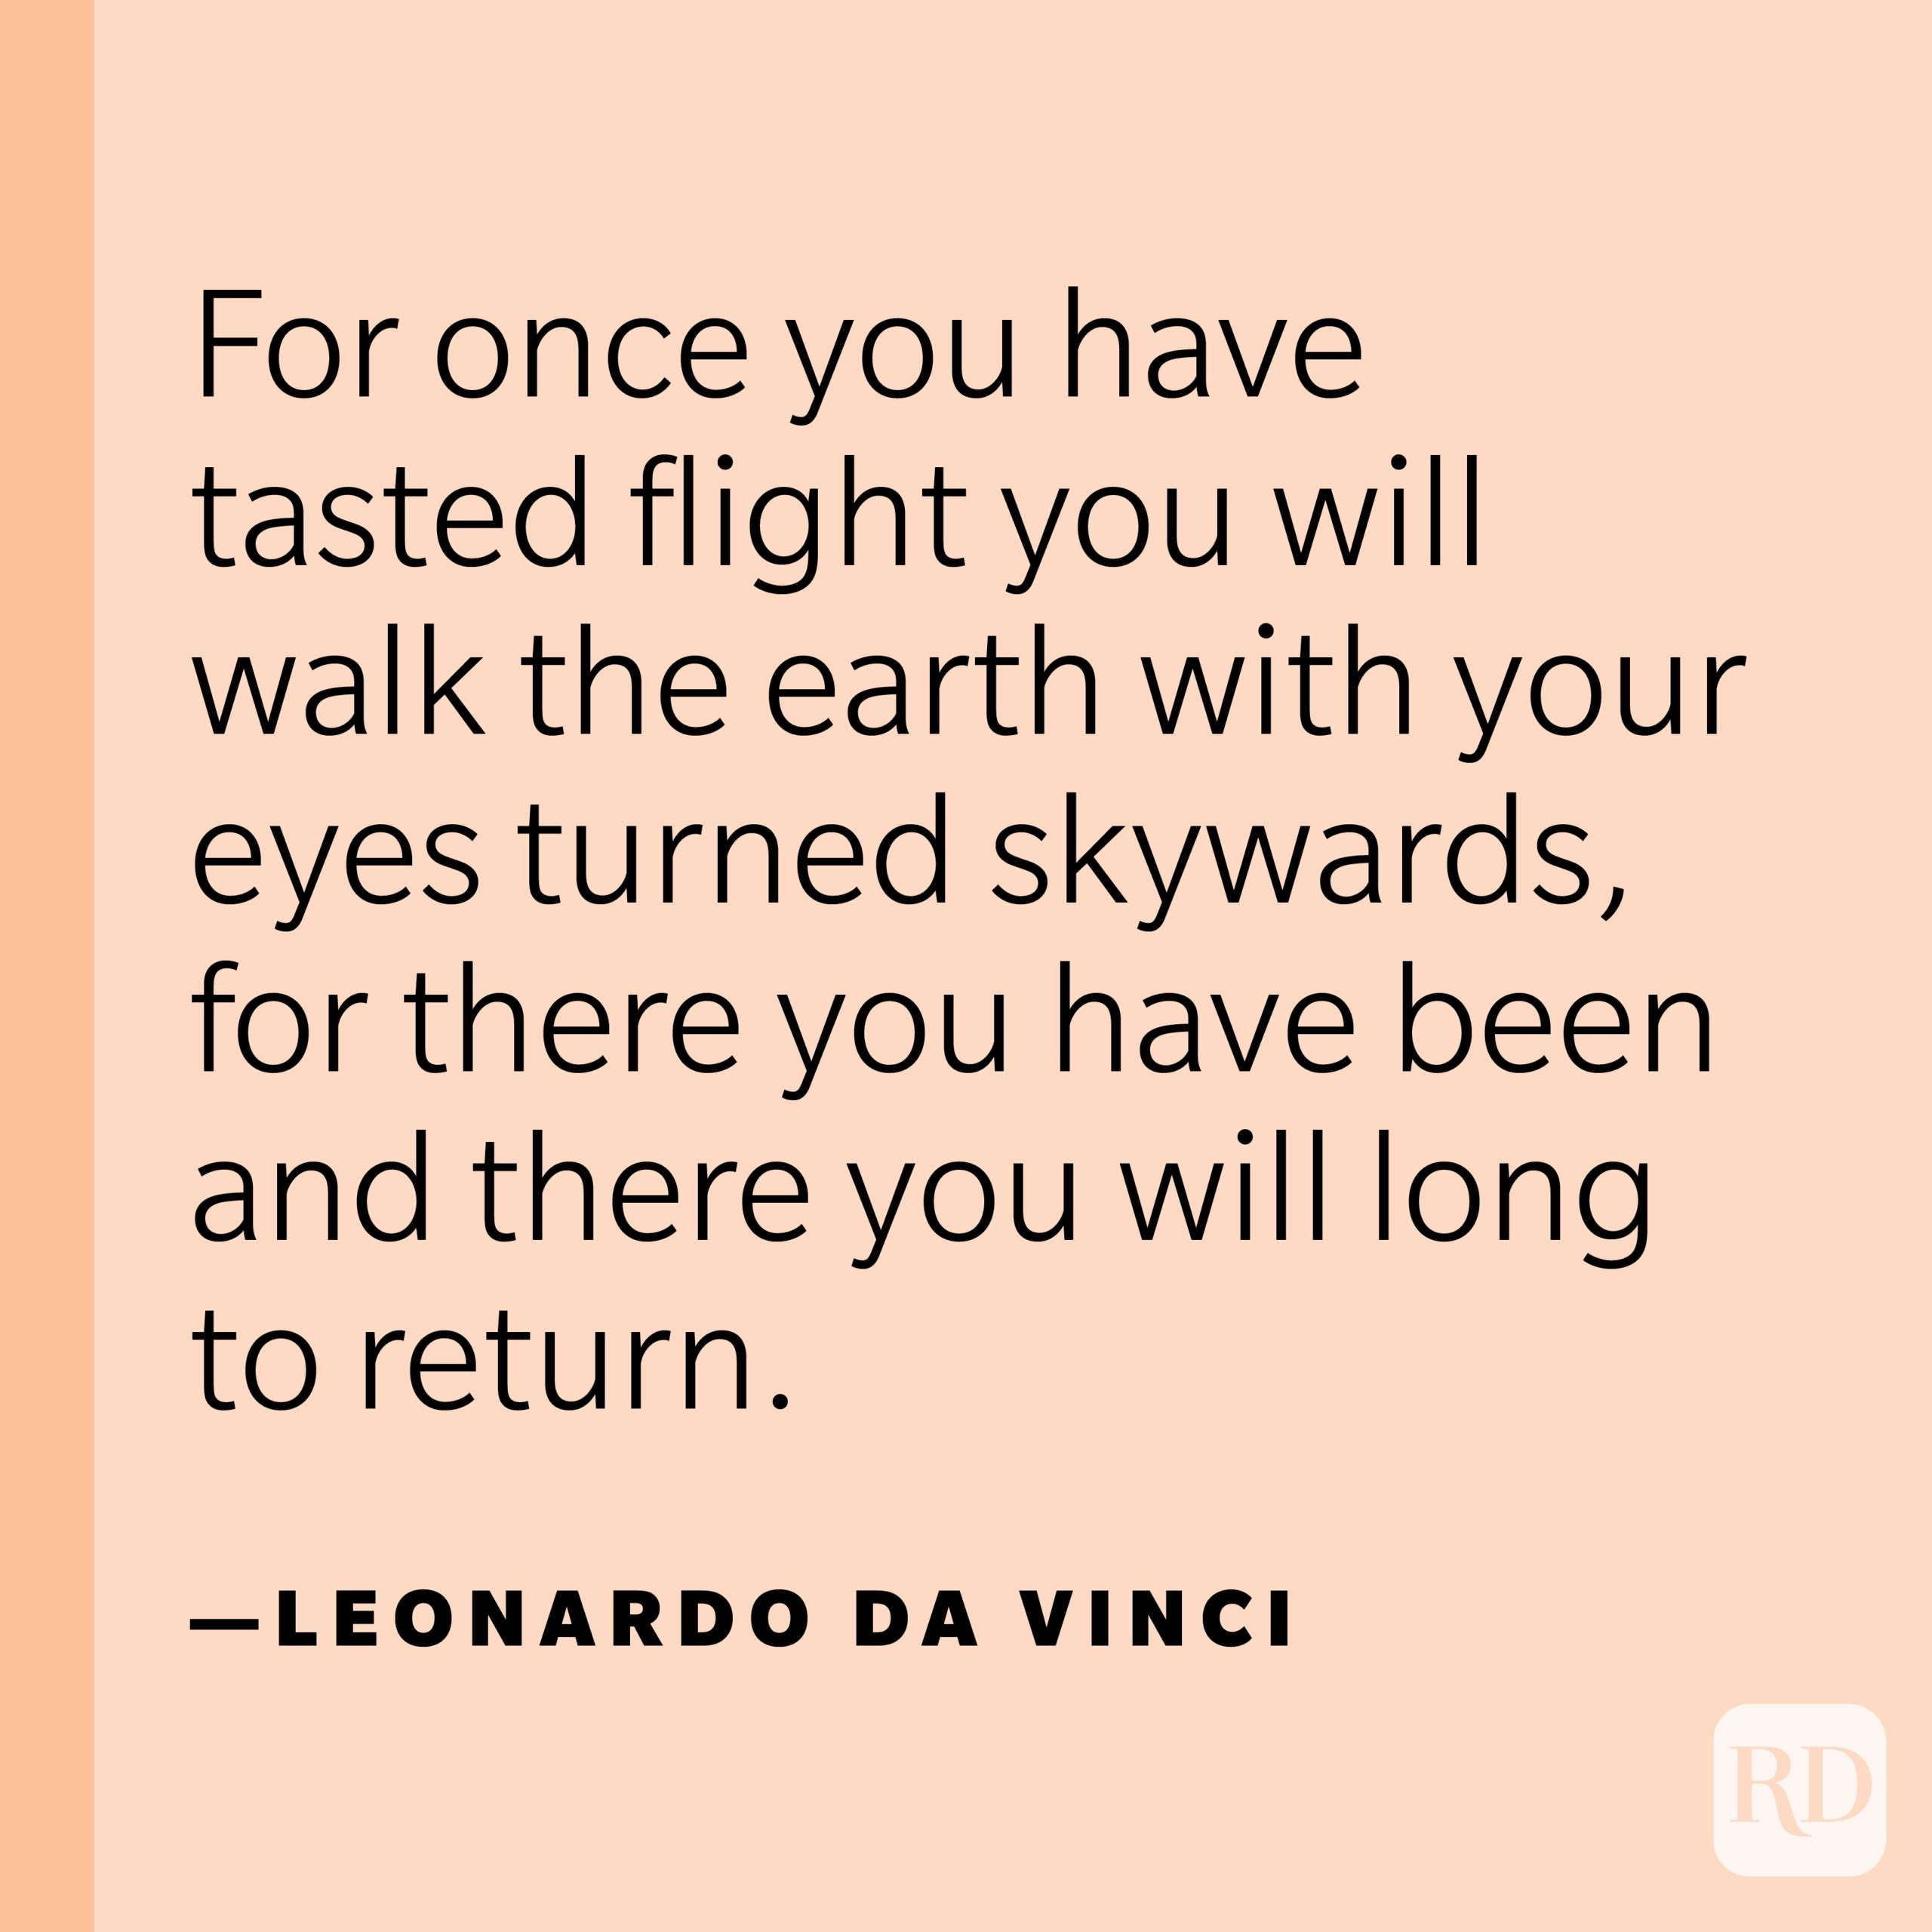 """""""For once you have tasted flight you will walk the earth with your eyes turned skywards, for there you have been and there you will long to return."""" —Leonardo da Vinci."""